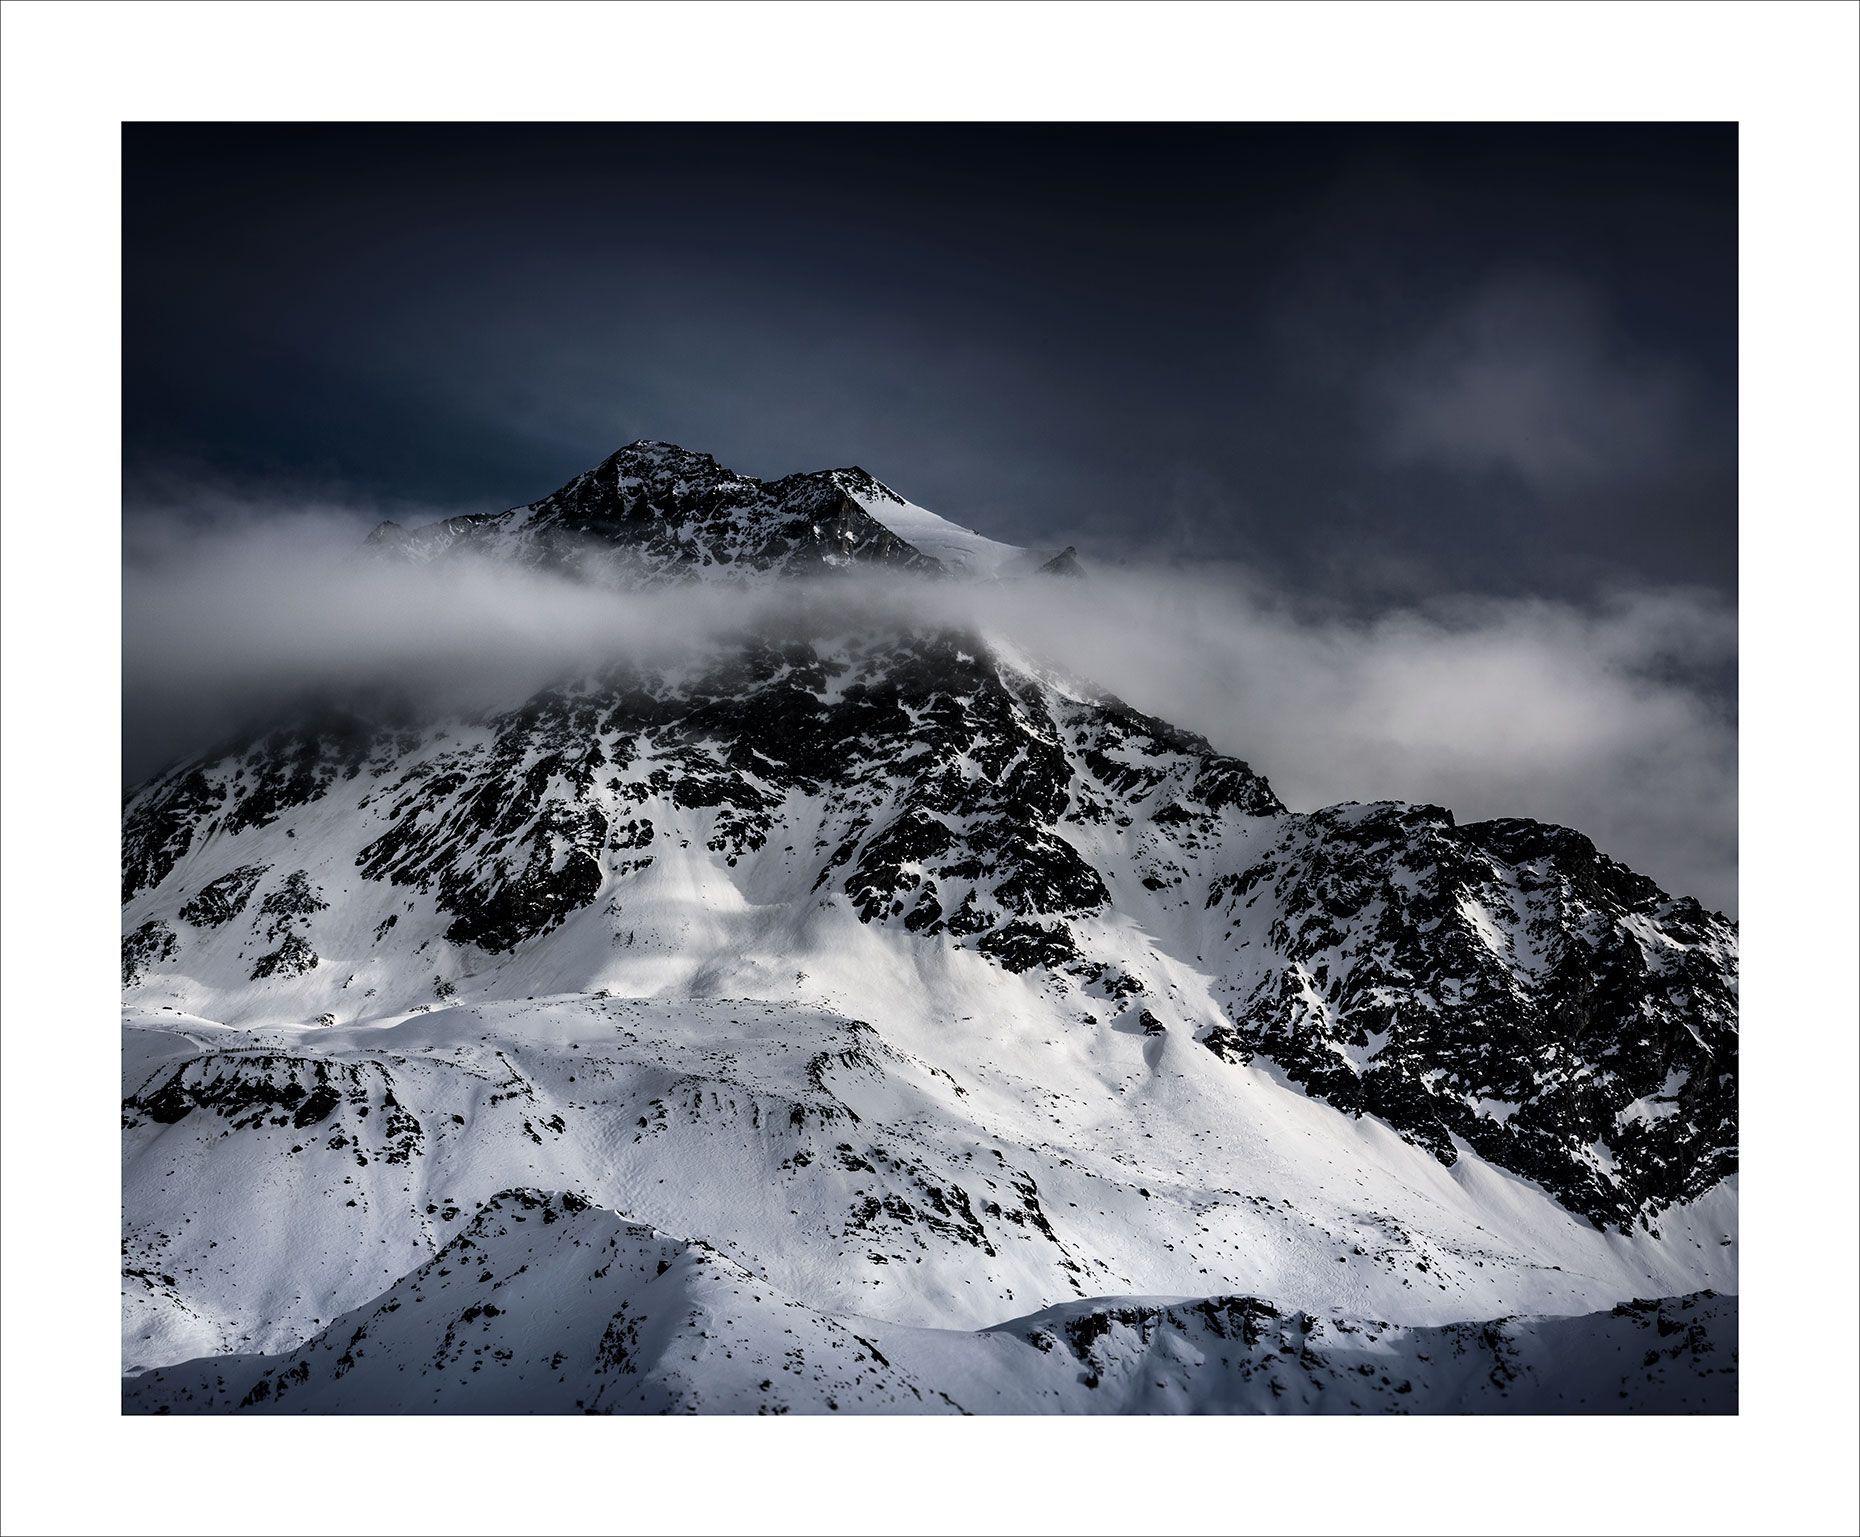 alps-mountain-landscape-photography-edition-print-09